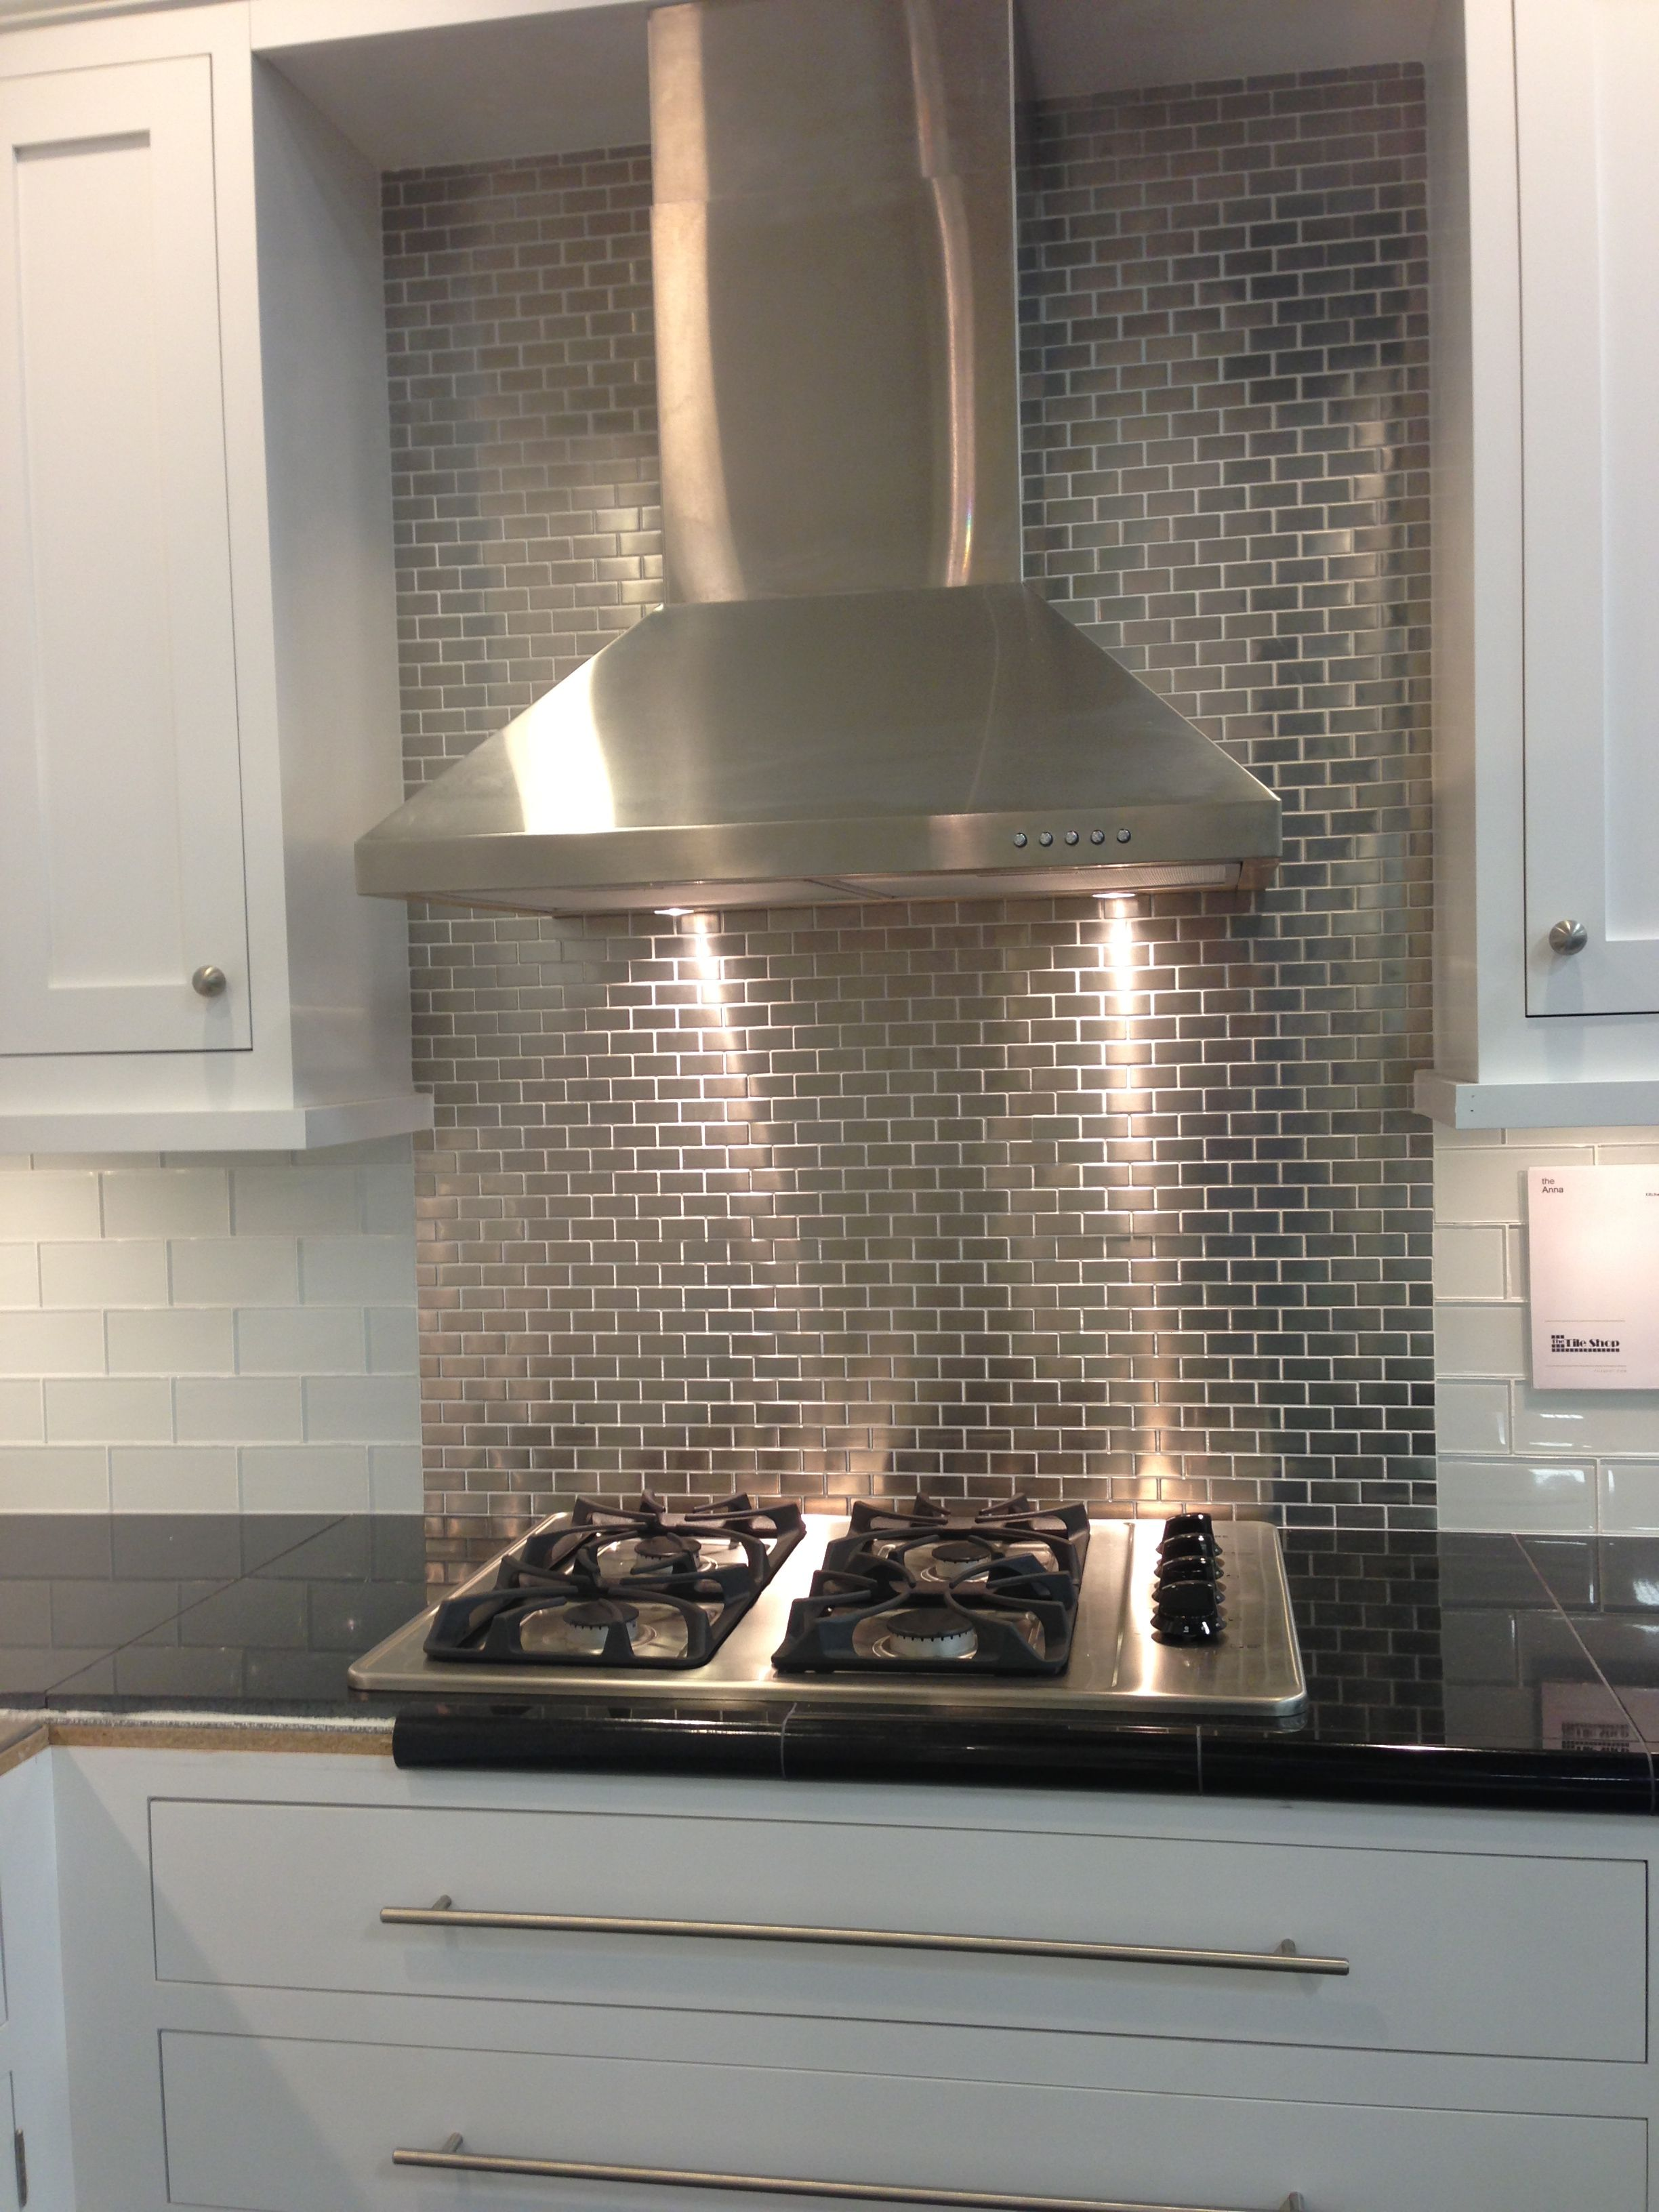 Stainless steel tile backsplash perhaps for an in kitchen bar area